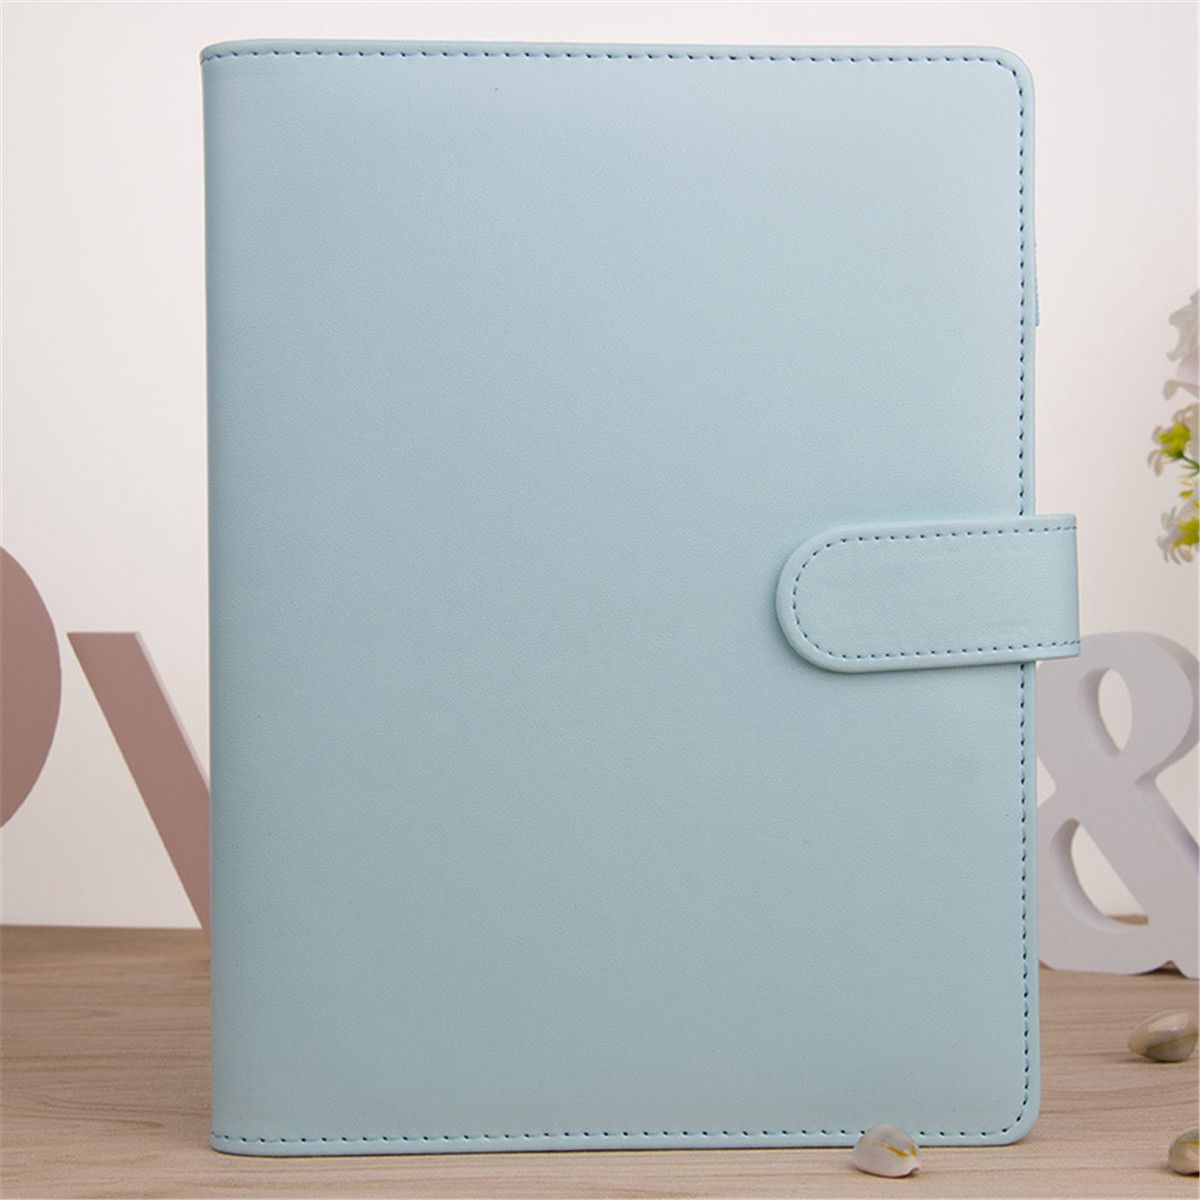 New A5 Weekly Monthly Planner Diary Classic Loose-Leaf-Ring-Binder Notebook Cover, Blue a5 planner agenda pu loose leaf weekly monthly journal diary notebook blue